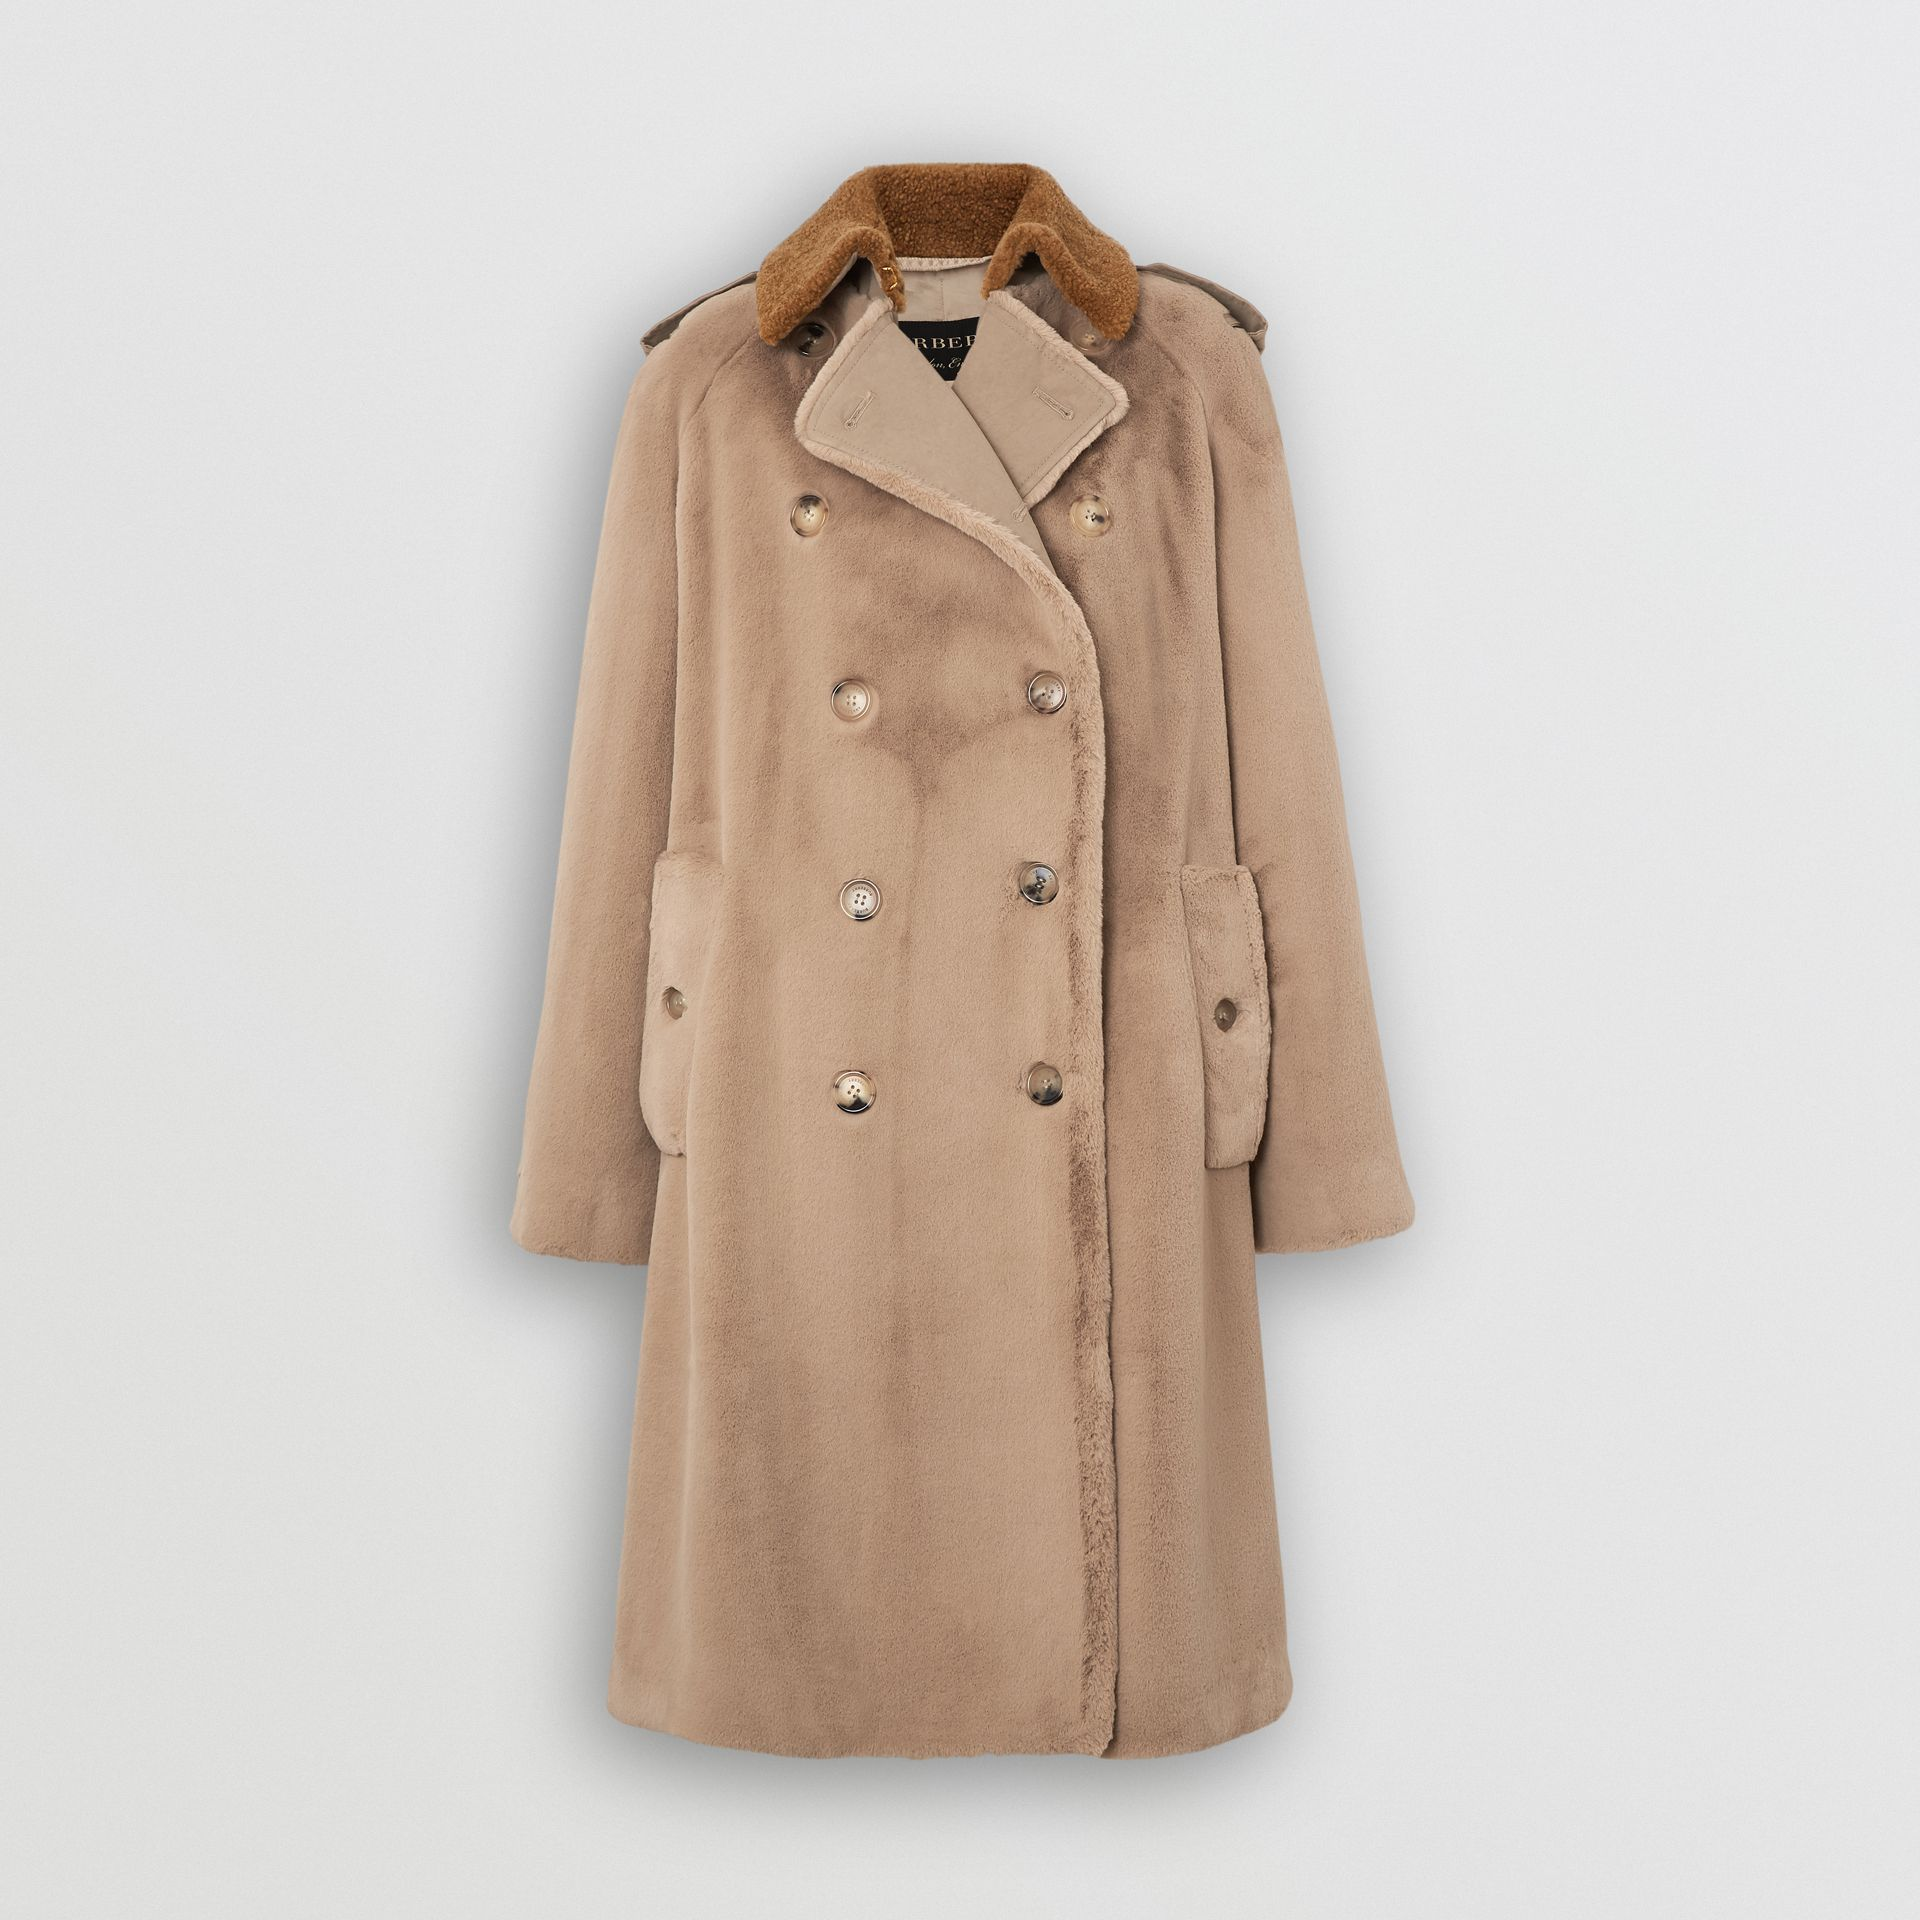 Shearling Trim Faux Fur Trench Coat in Taupe - Women | Burberry Hong Kong - gallery image 3